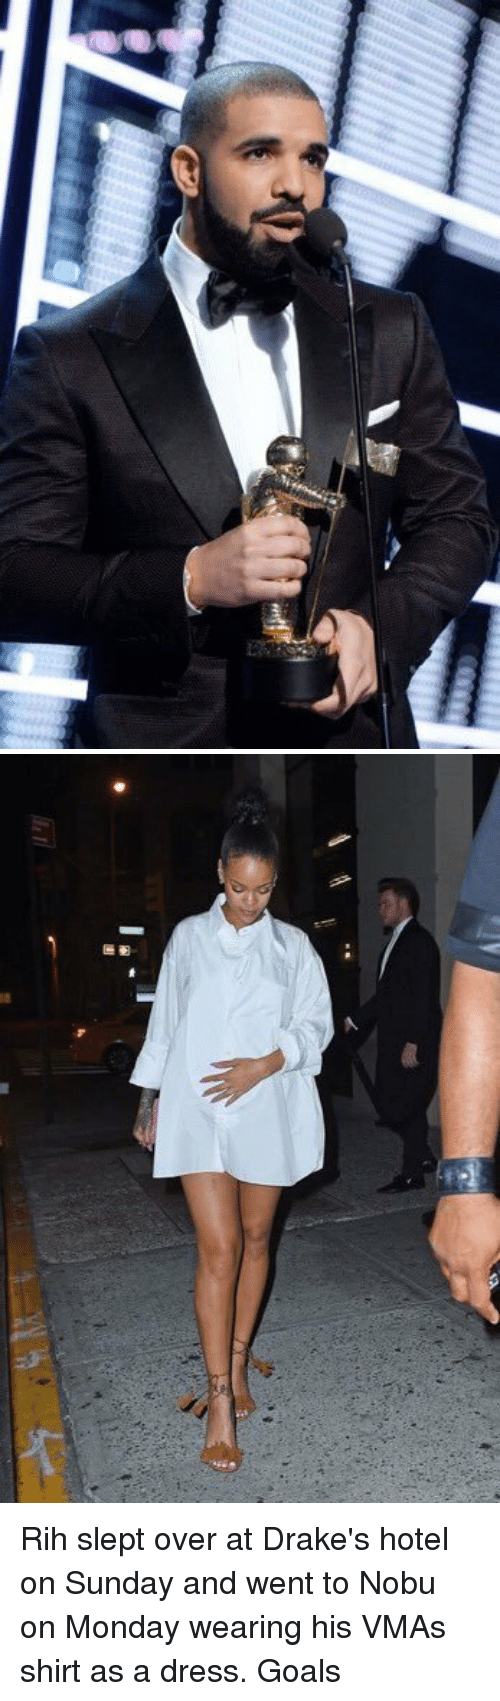 Overation: rif   周團 Rih slept over at Drake's hotel on Sunday and went to Nobu on Monday wearing his VMAs shirt as a dress. Goals